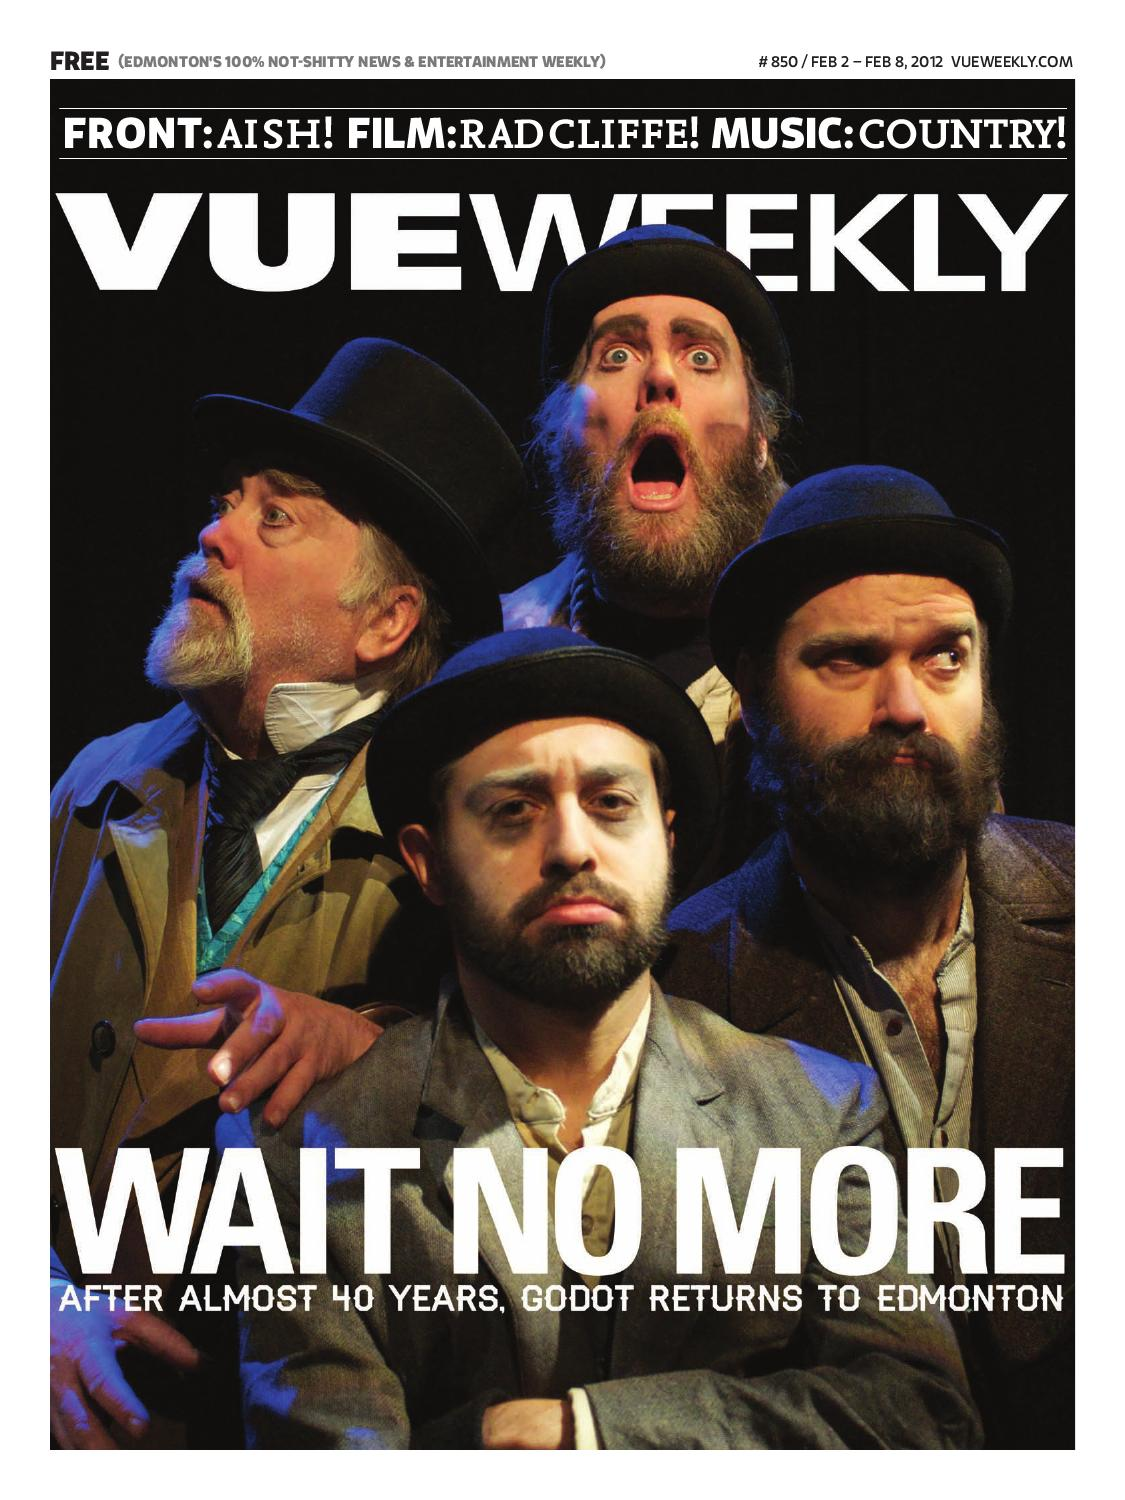 Vue weekly 850 feb2 8 2012 by vue weekly issuu fandeluxe Image collections